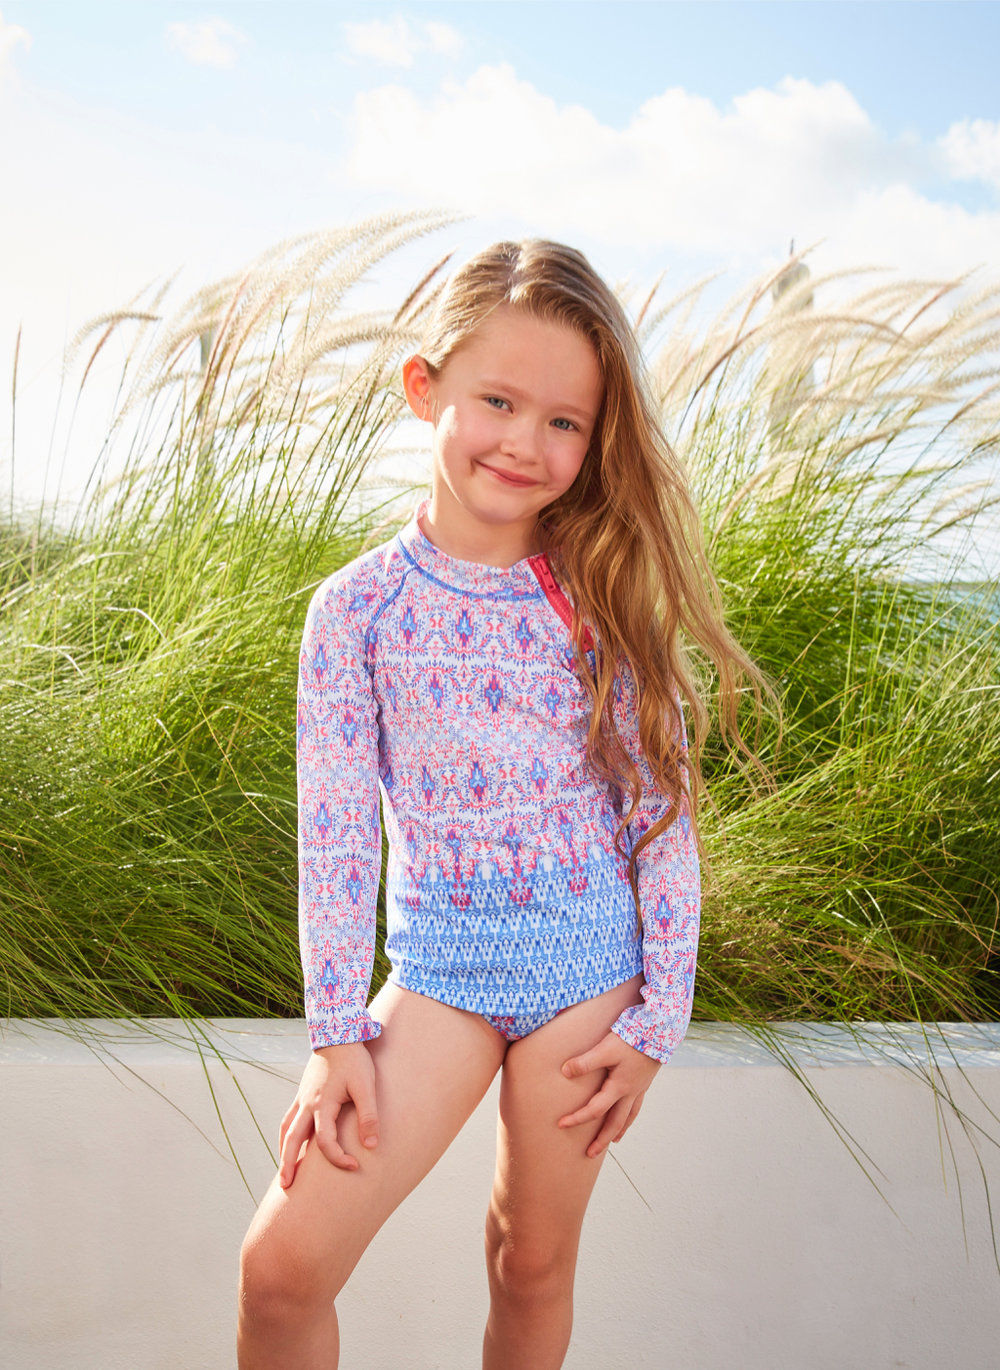 Little-Girls-Rashguard-Sets_Cabana-Life_Malibu-Arrows-Rashguard-Set-1.jpg